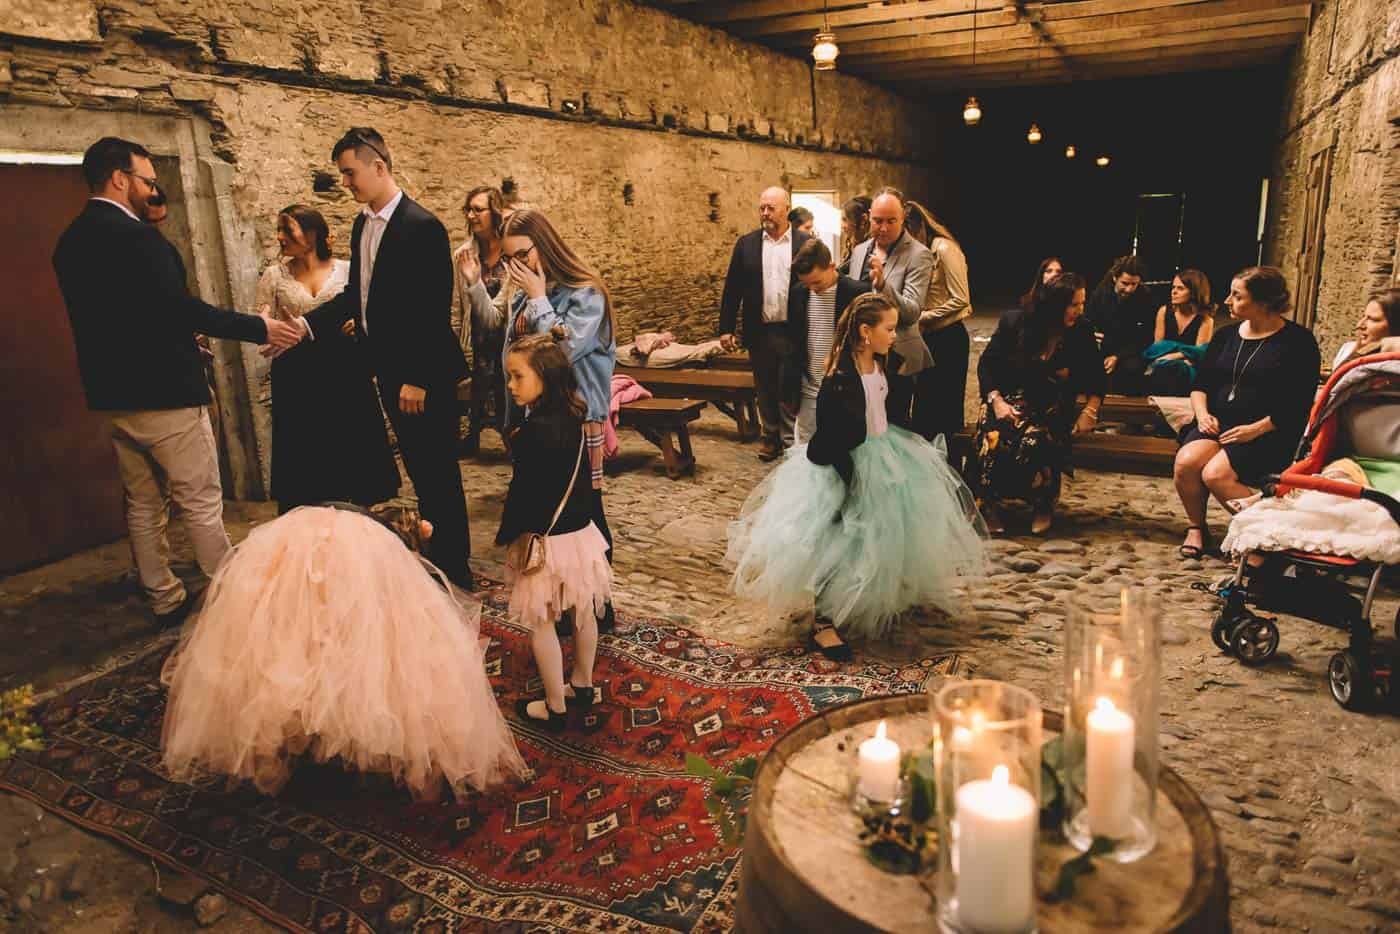 Sam & Kirk's Thurlby Domain Elopement - ceremony in the old stone stables with Jodie Stuart Wedding Celebrant